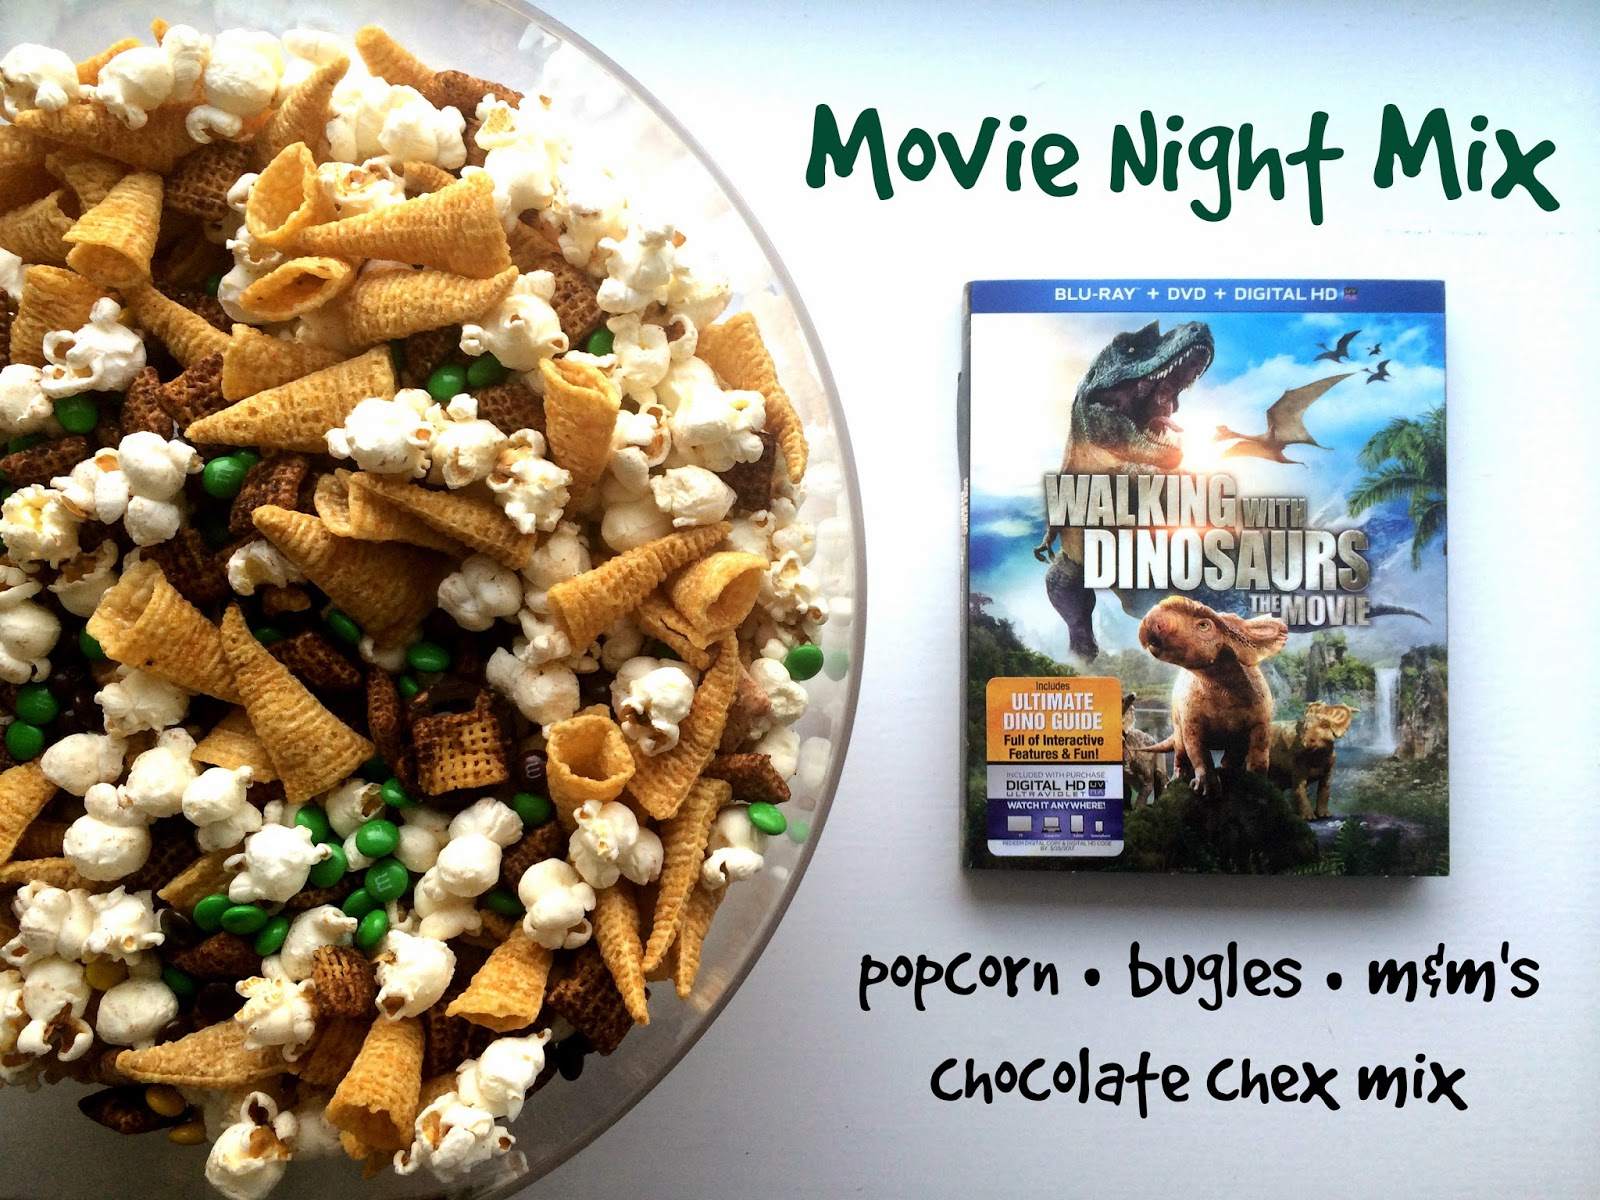 Walking with Dinosaurs Movie Night Mix